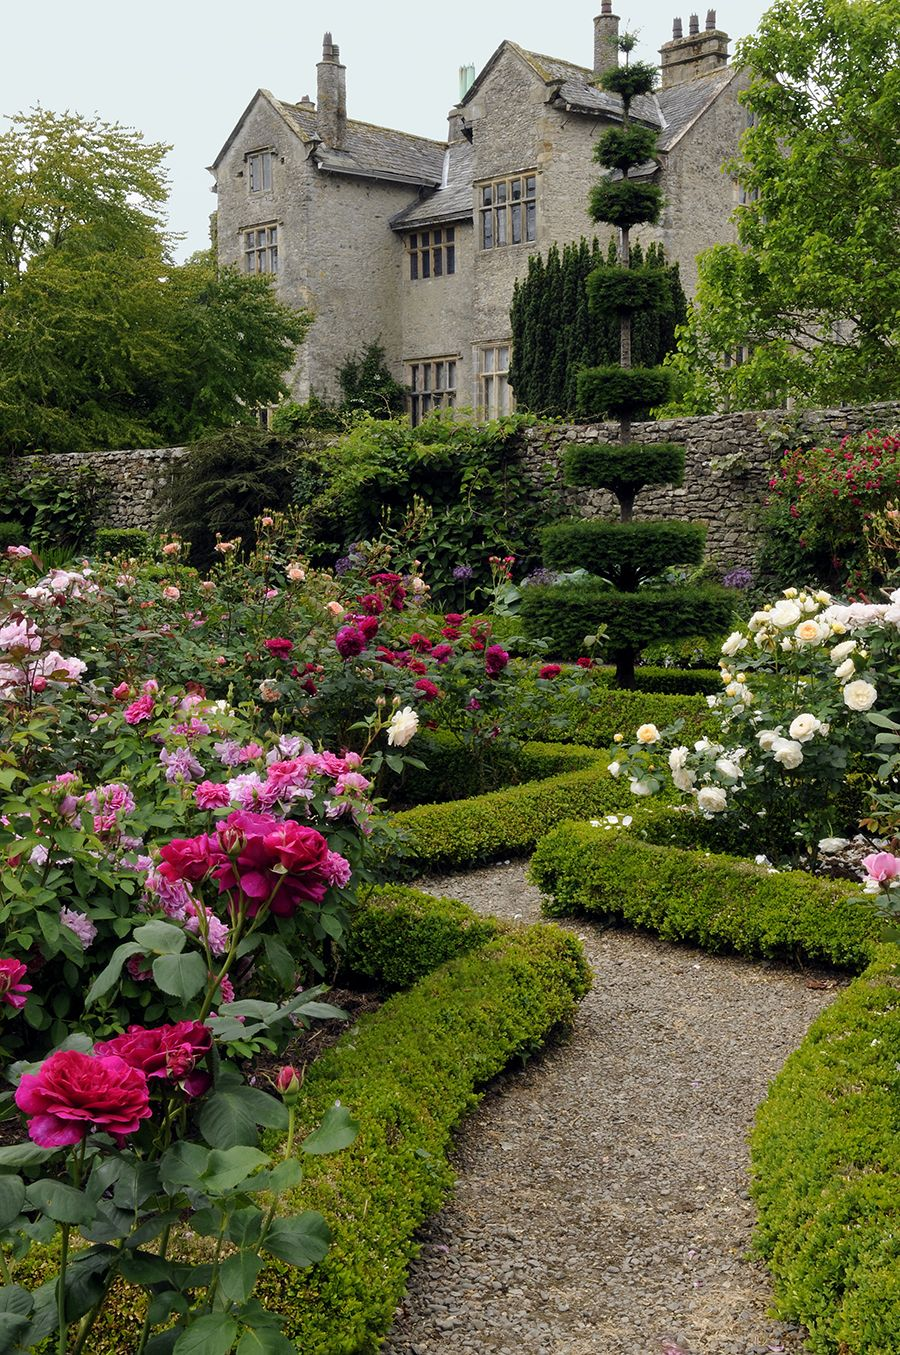 Classic English Manor House With A Beautiful Garden.